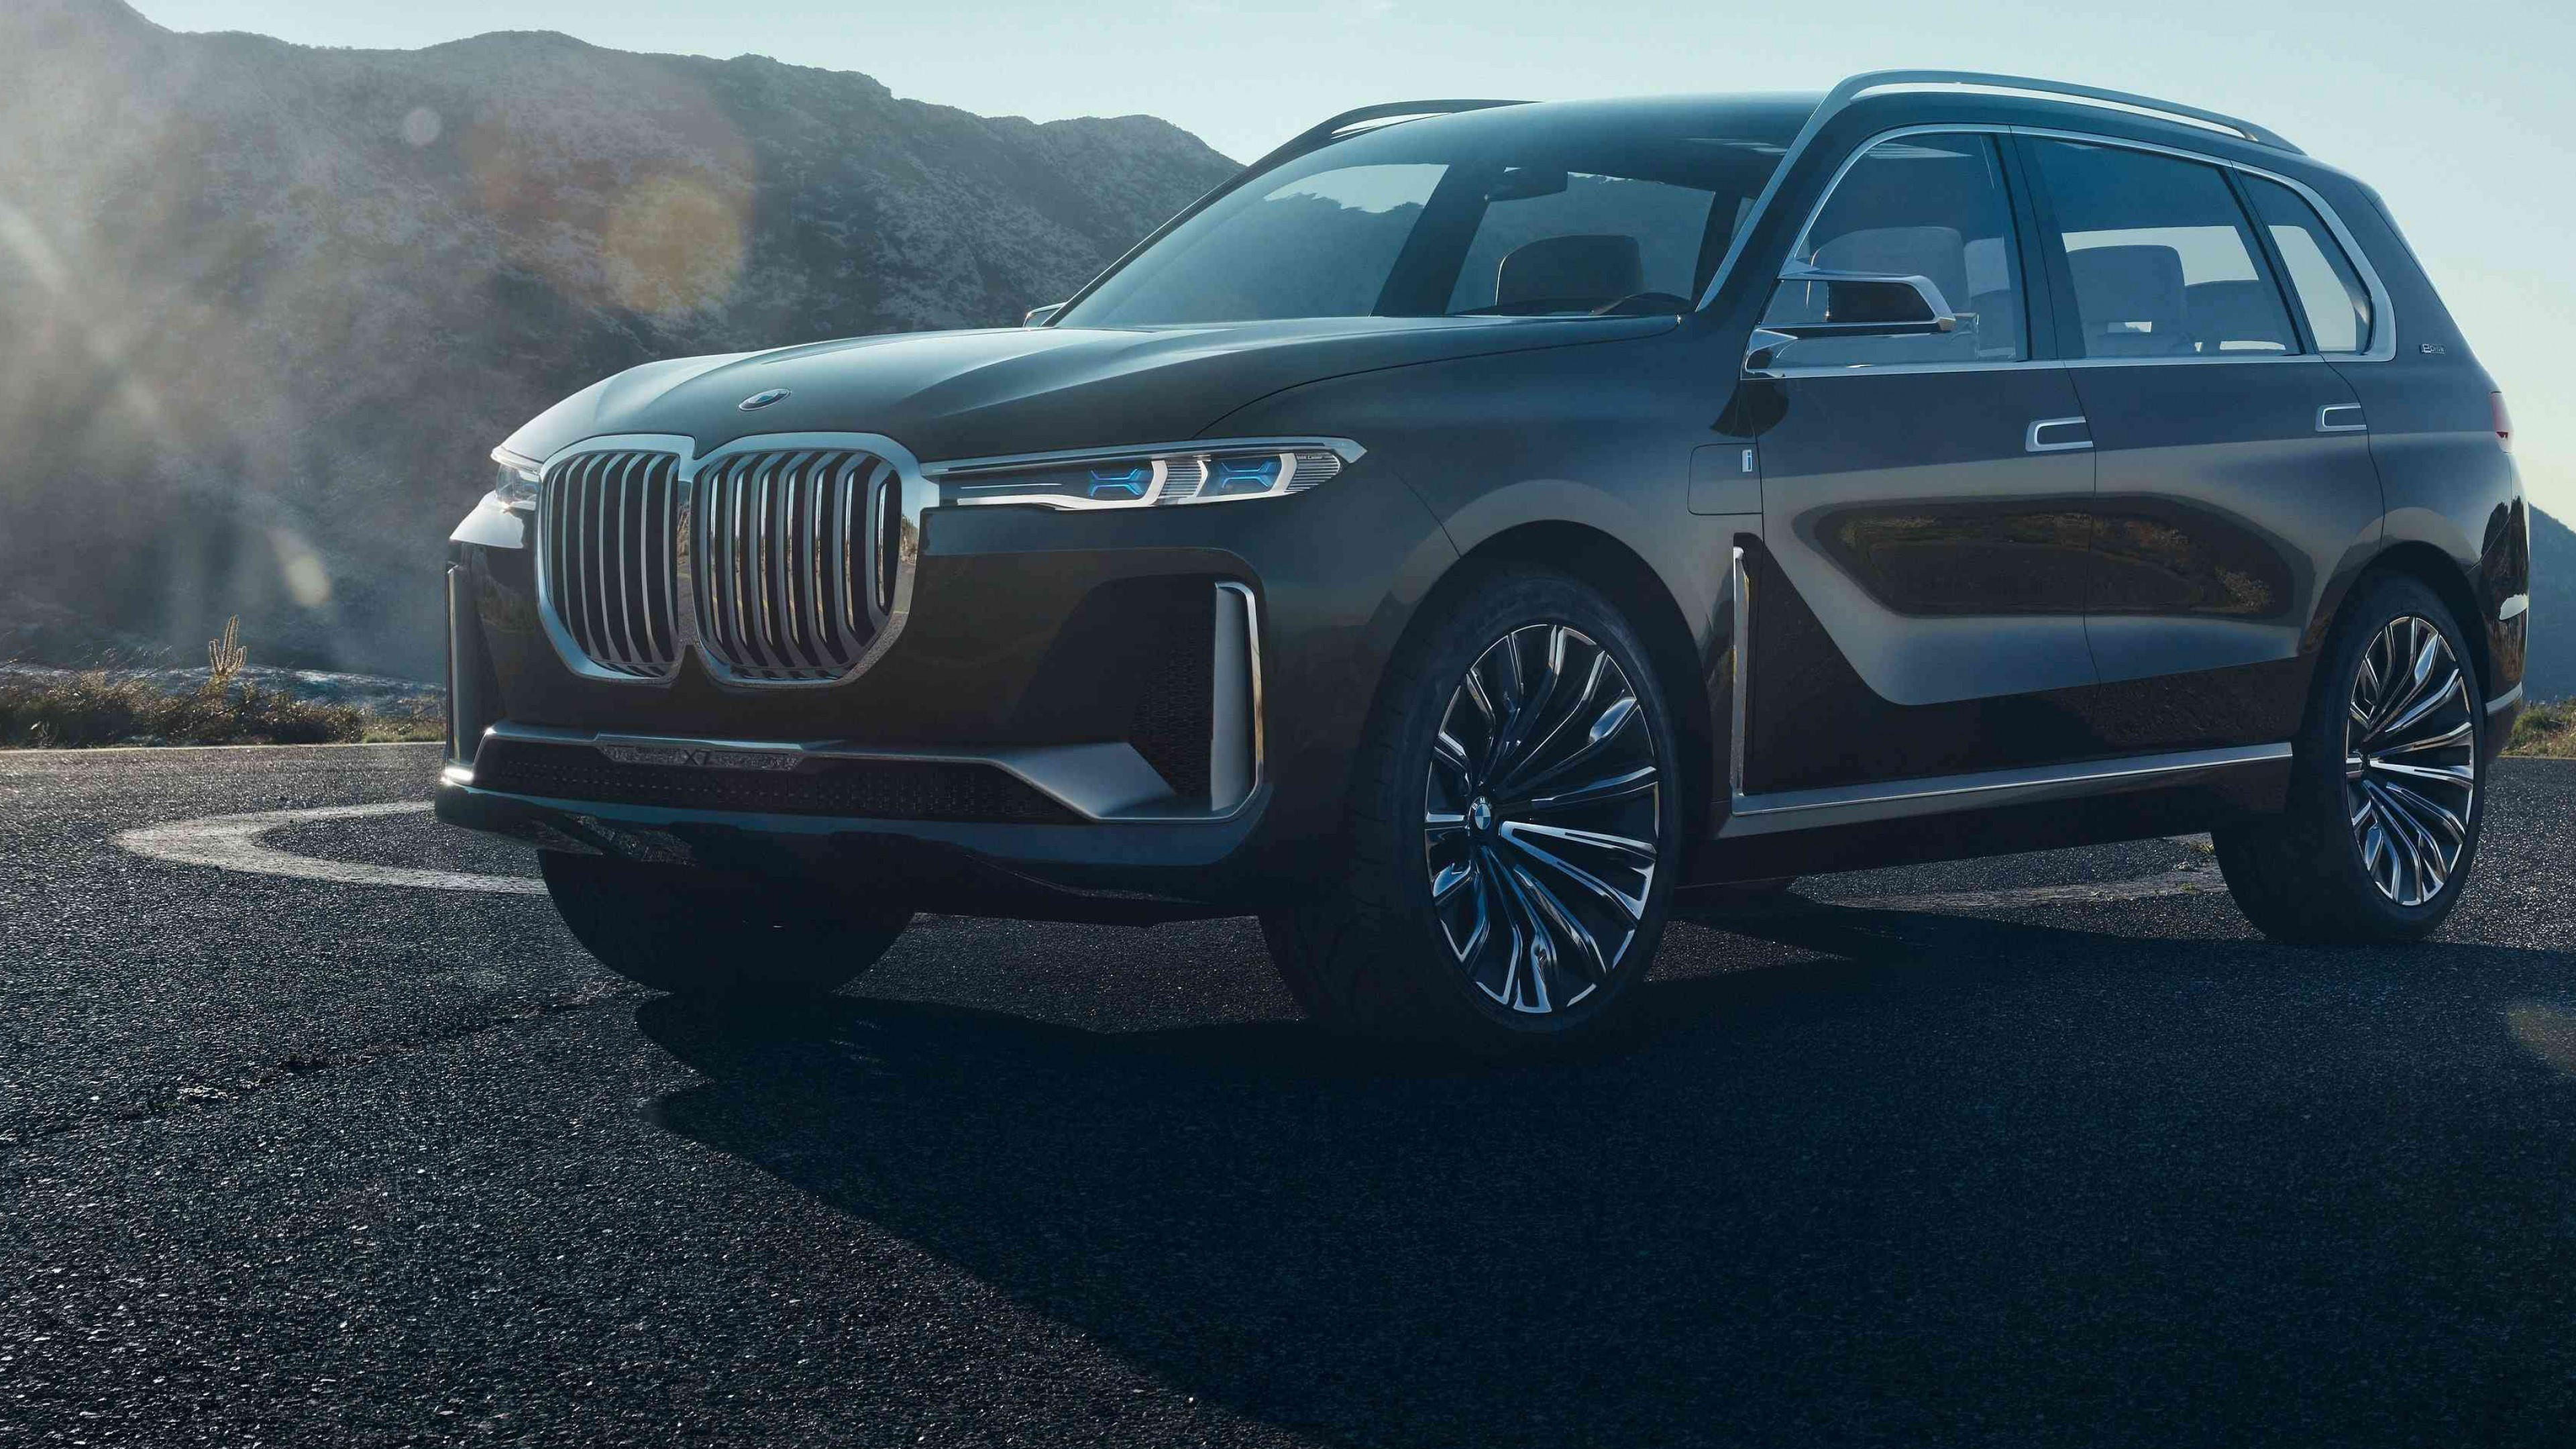 BMW X7 2018 >> Wallpaper BMW X7, 2018 Cars, 4k, Cars & Bikes #15682